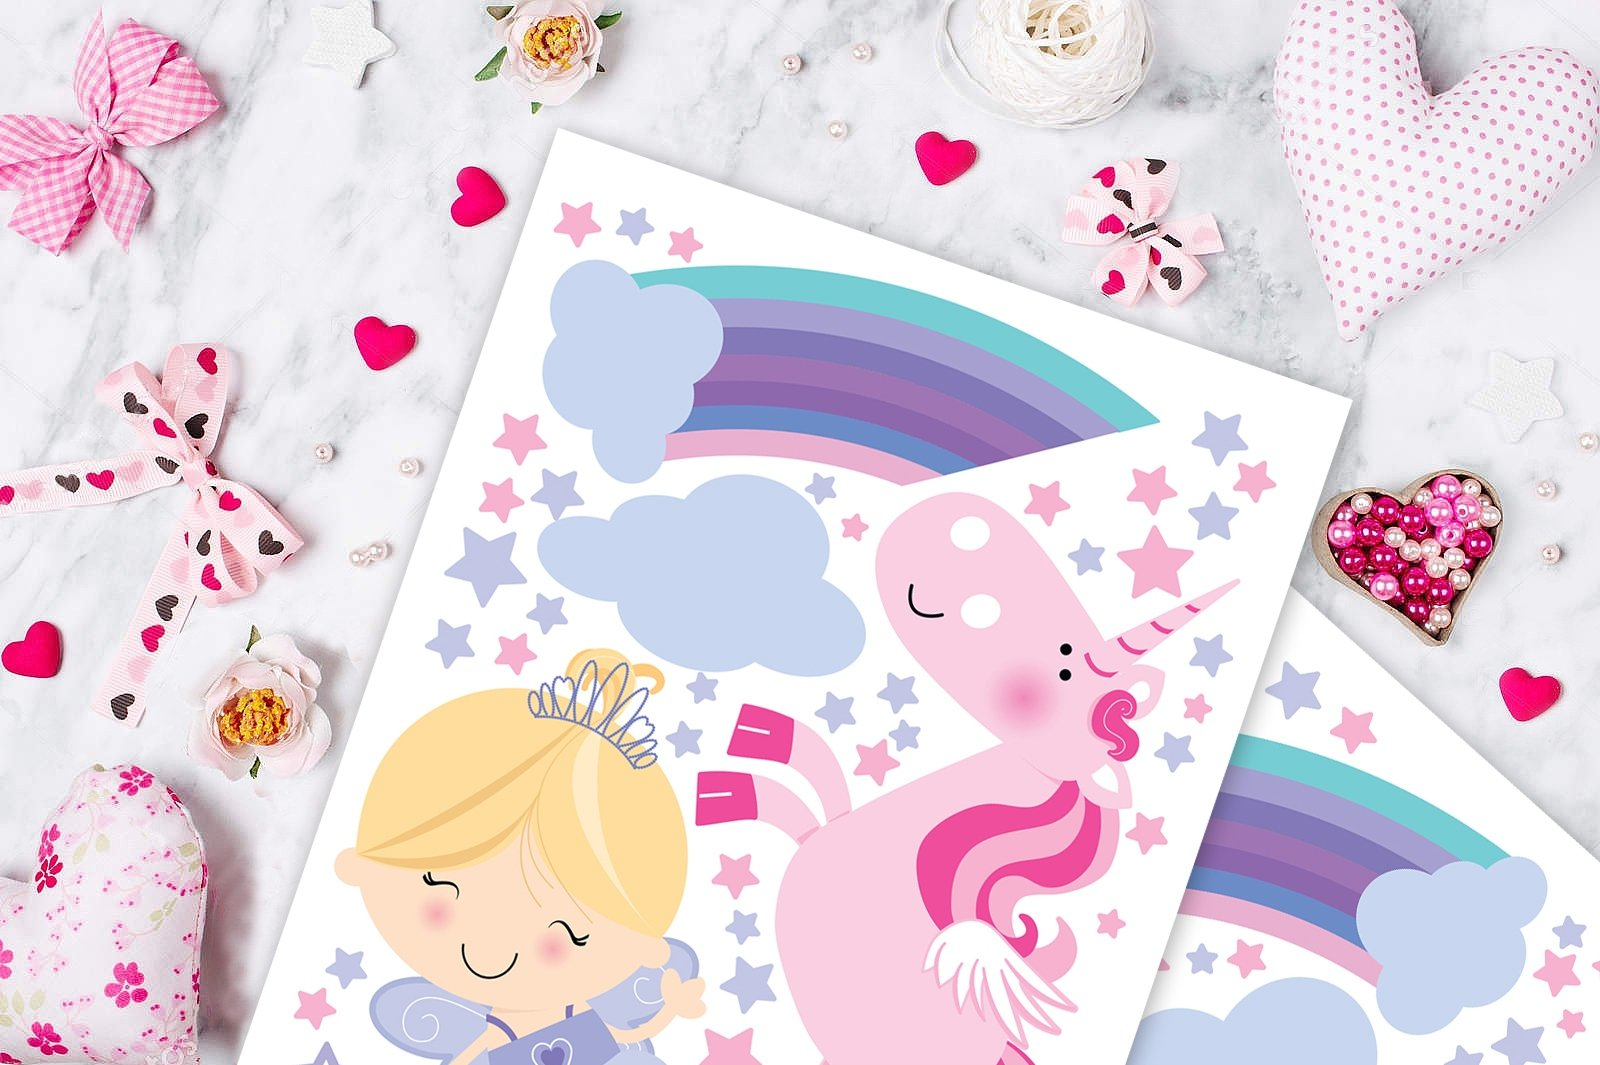 Fairy Unicorn Baby Girl Room Décor Stickers - Princess Playroom Wall Decals with Free Gift! 9